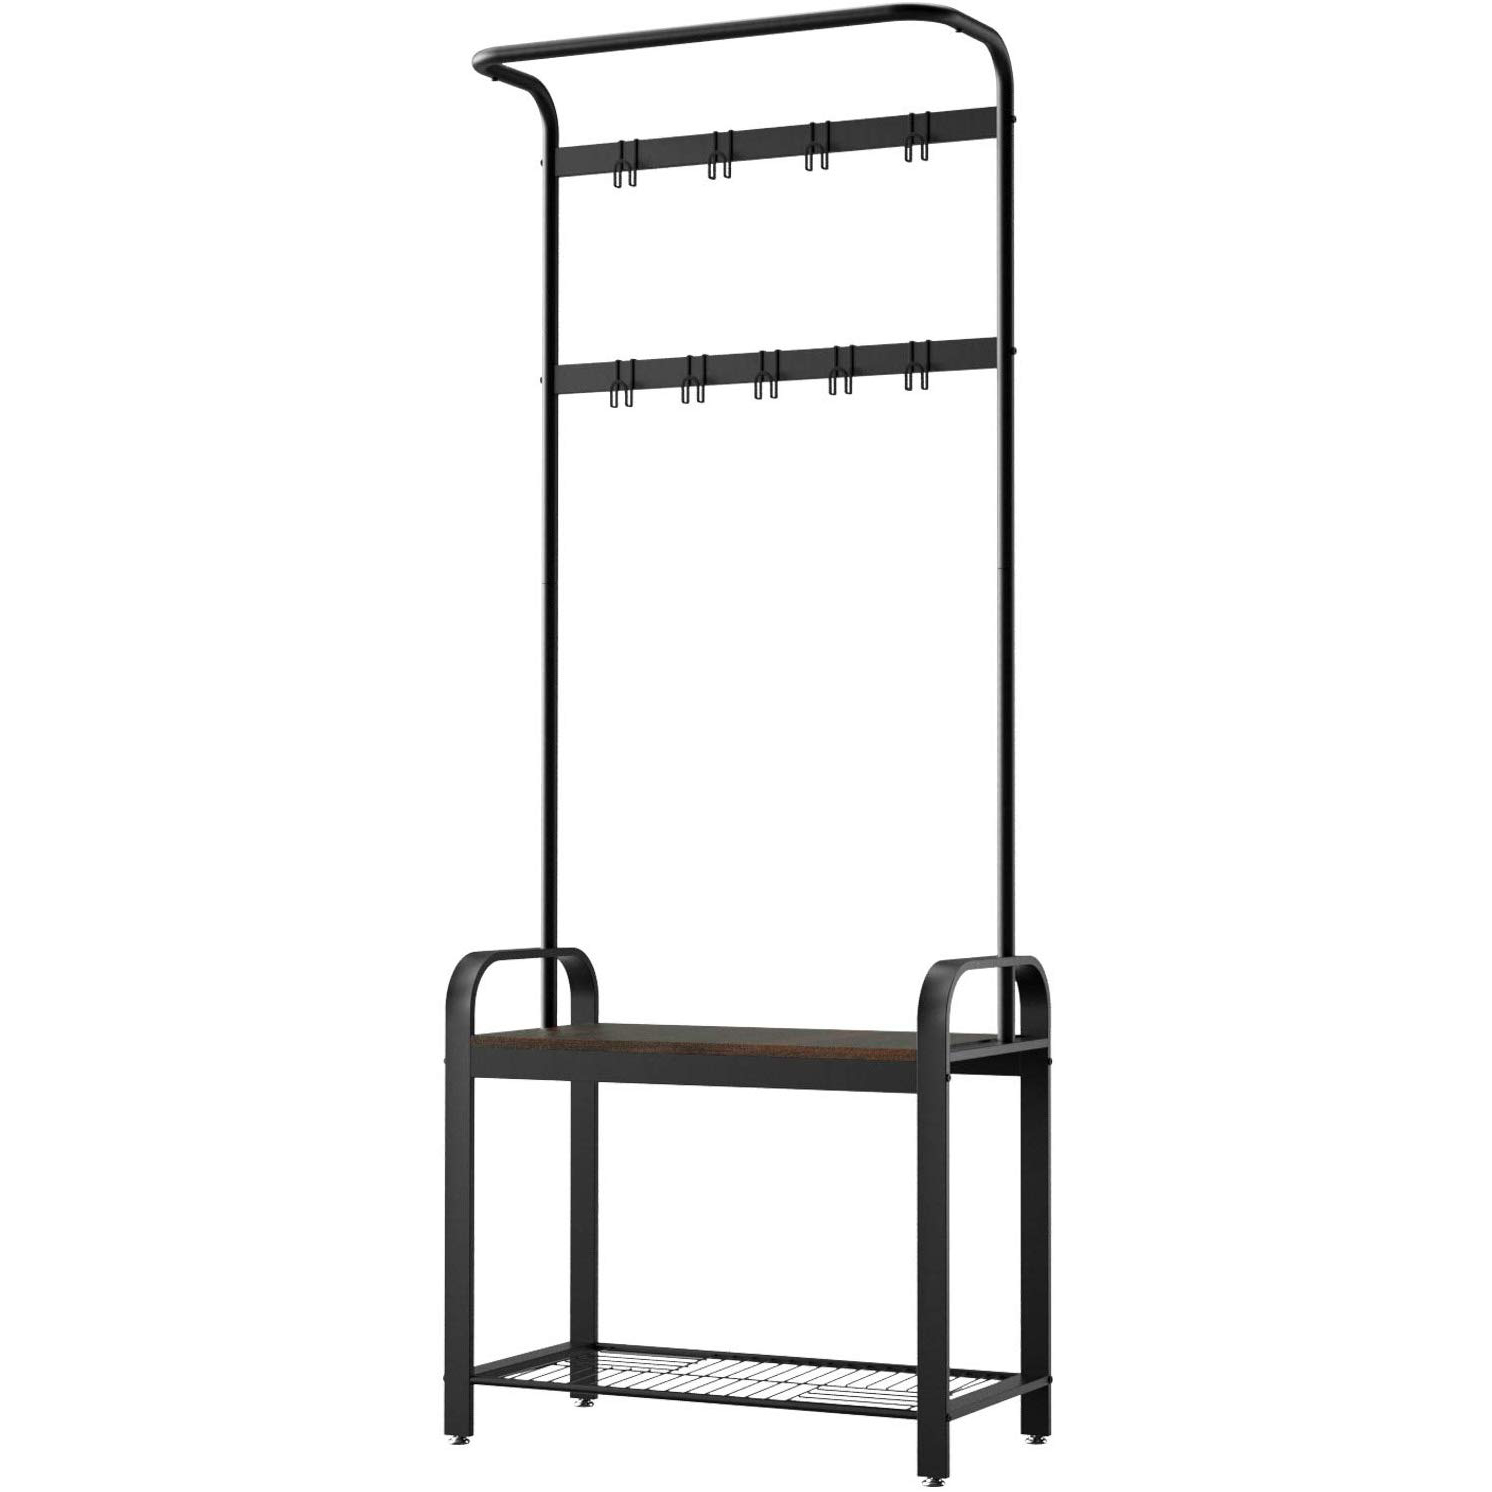 SRIWATANA Hall Tree with 9 Removable Hooks, Coat Rack Shoe Bench, Coat Stand Entryway Organizer, Walnut & Black Finish